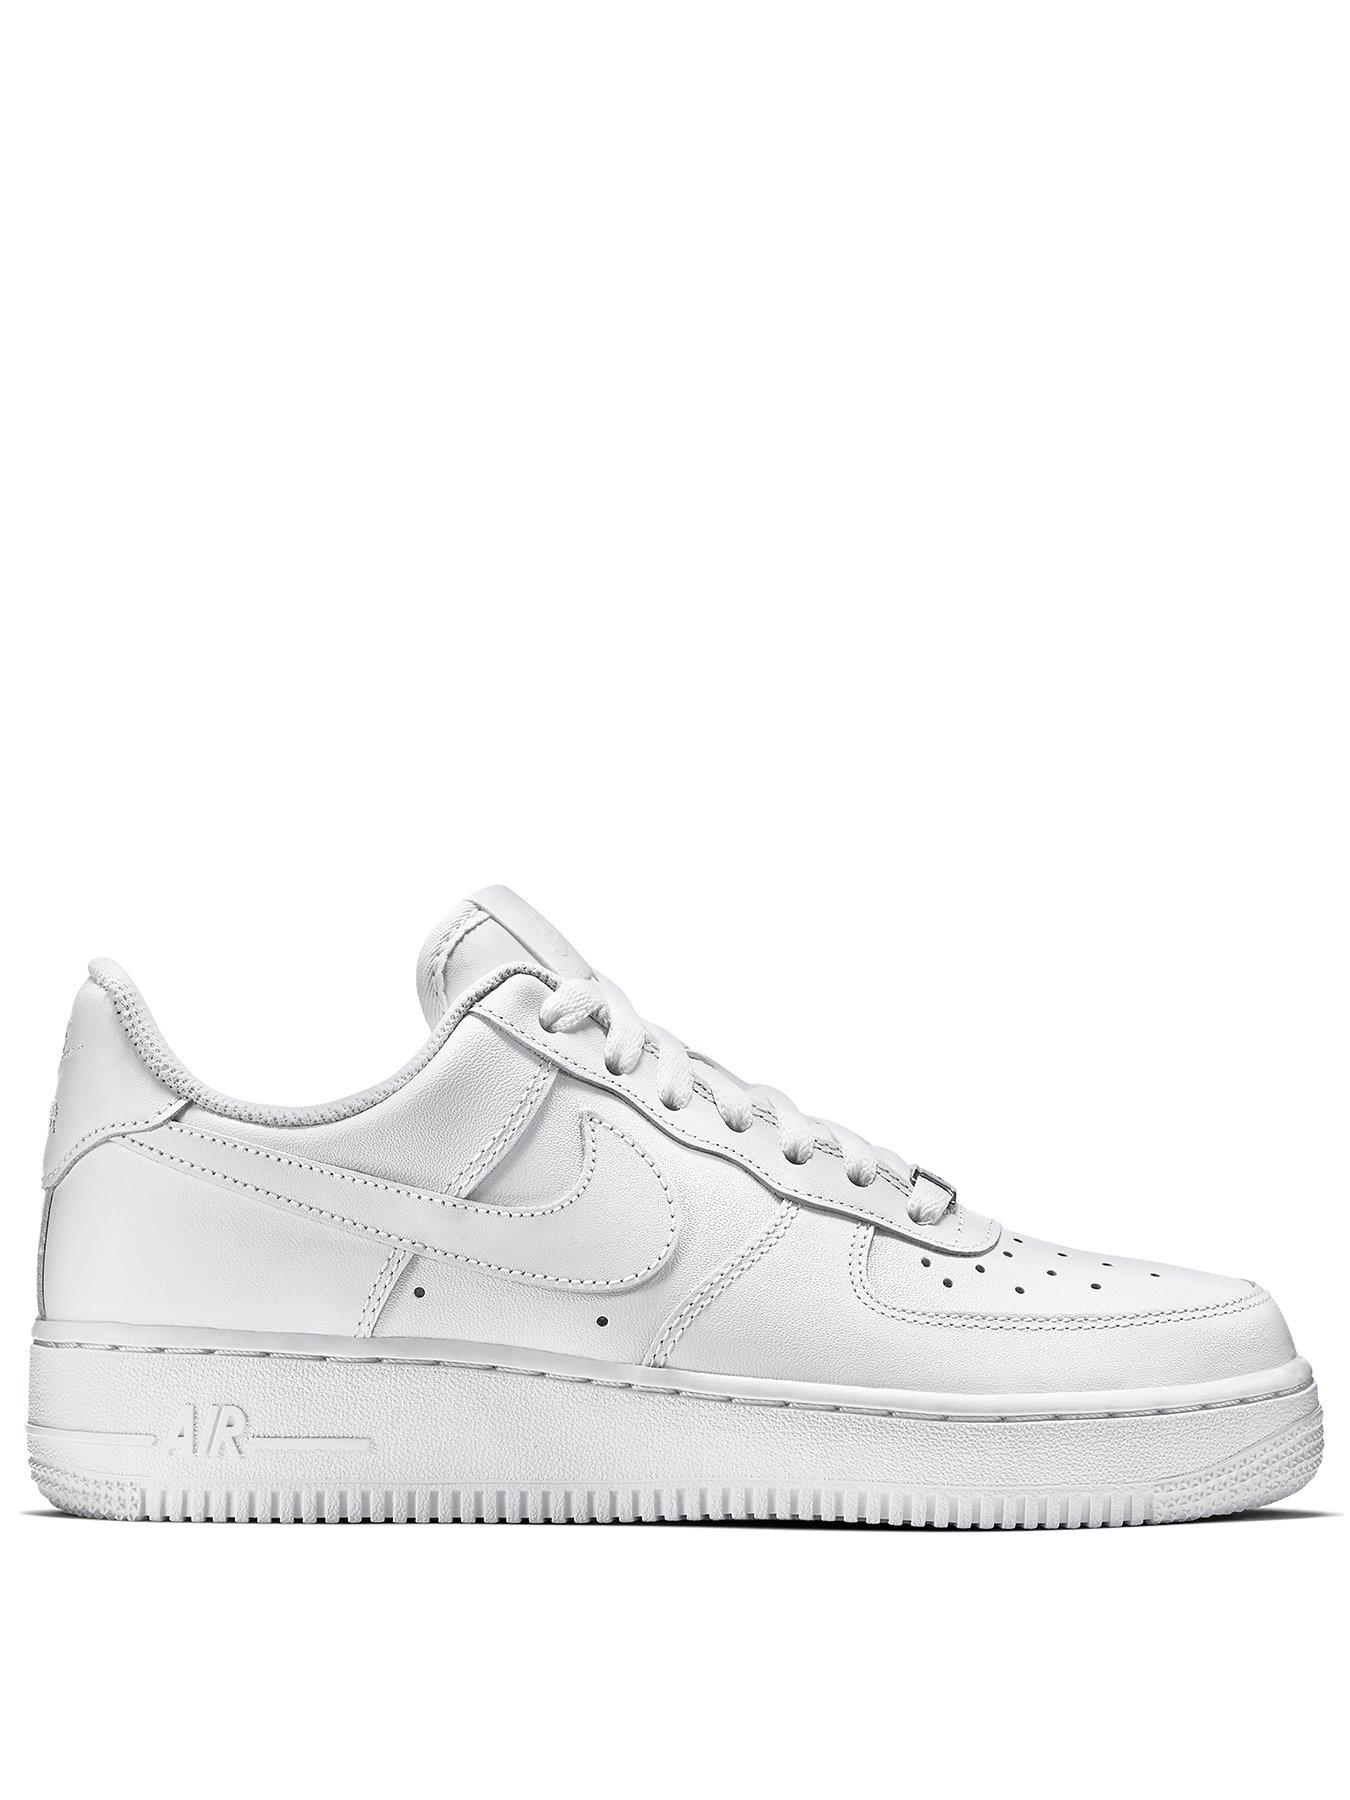 Nike Air Force 1 07 1600092007 Women's Shoes Nike Trainers